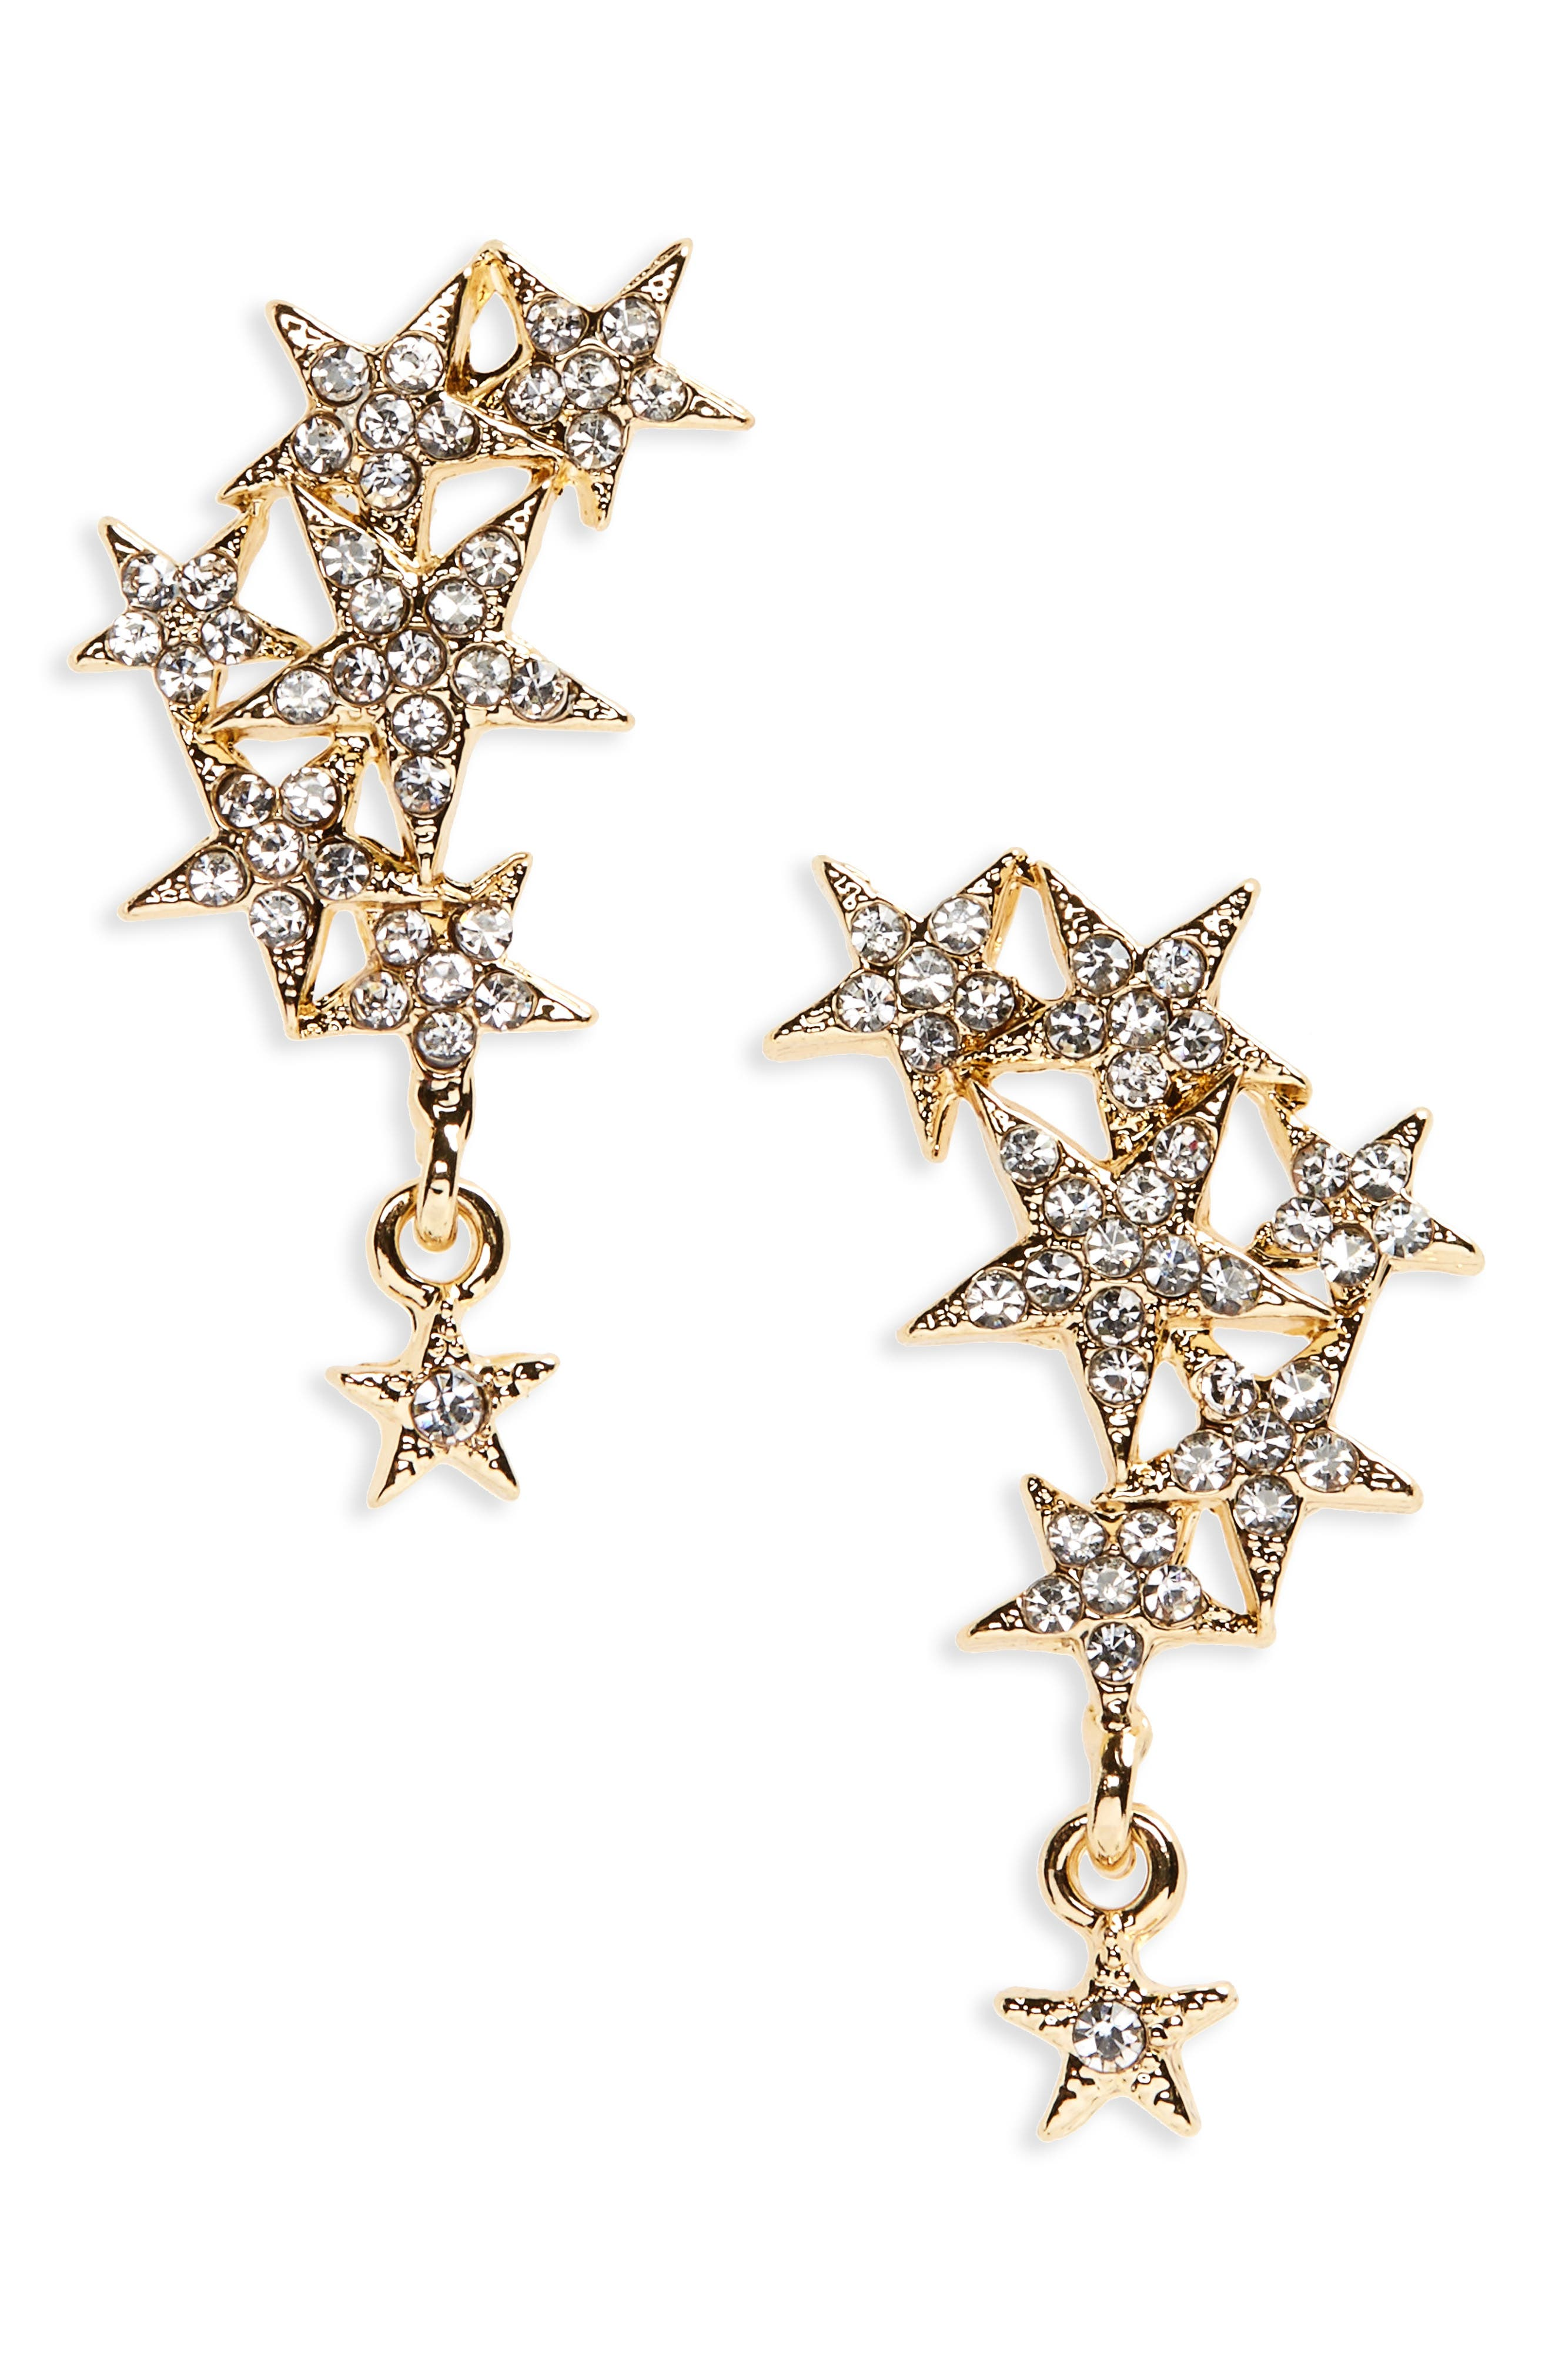 Crystal Star Cluster Statement Earrings,                             Main thumbnail 1, color,                             710